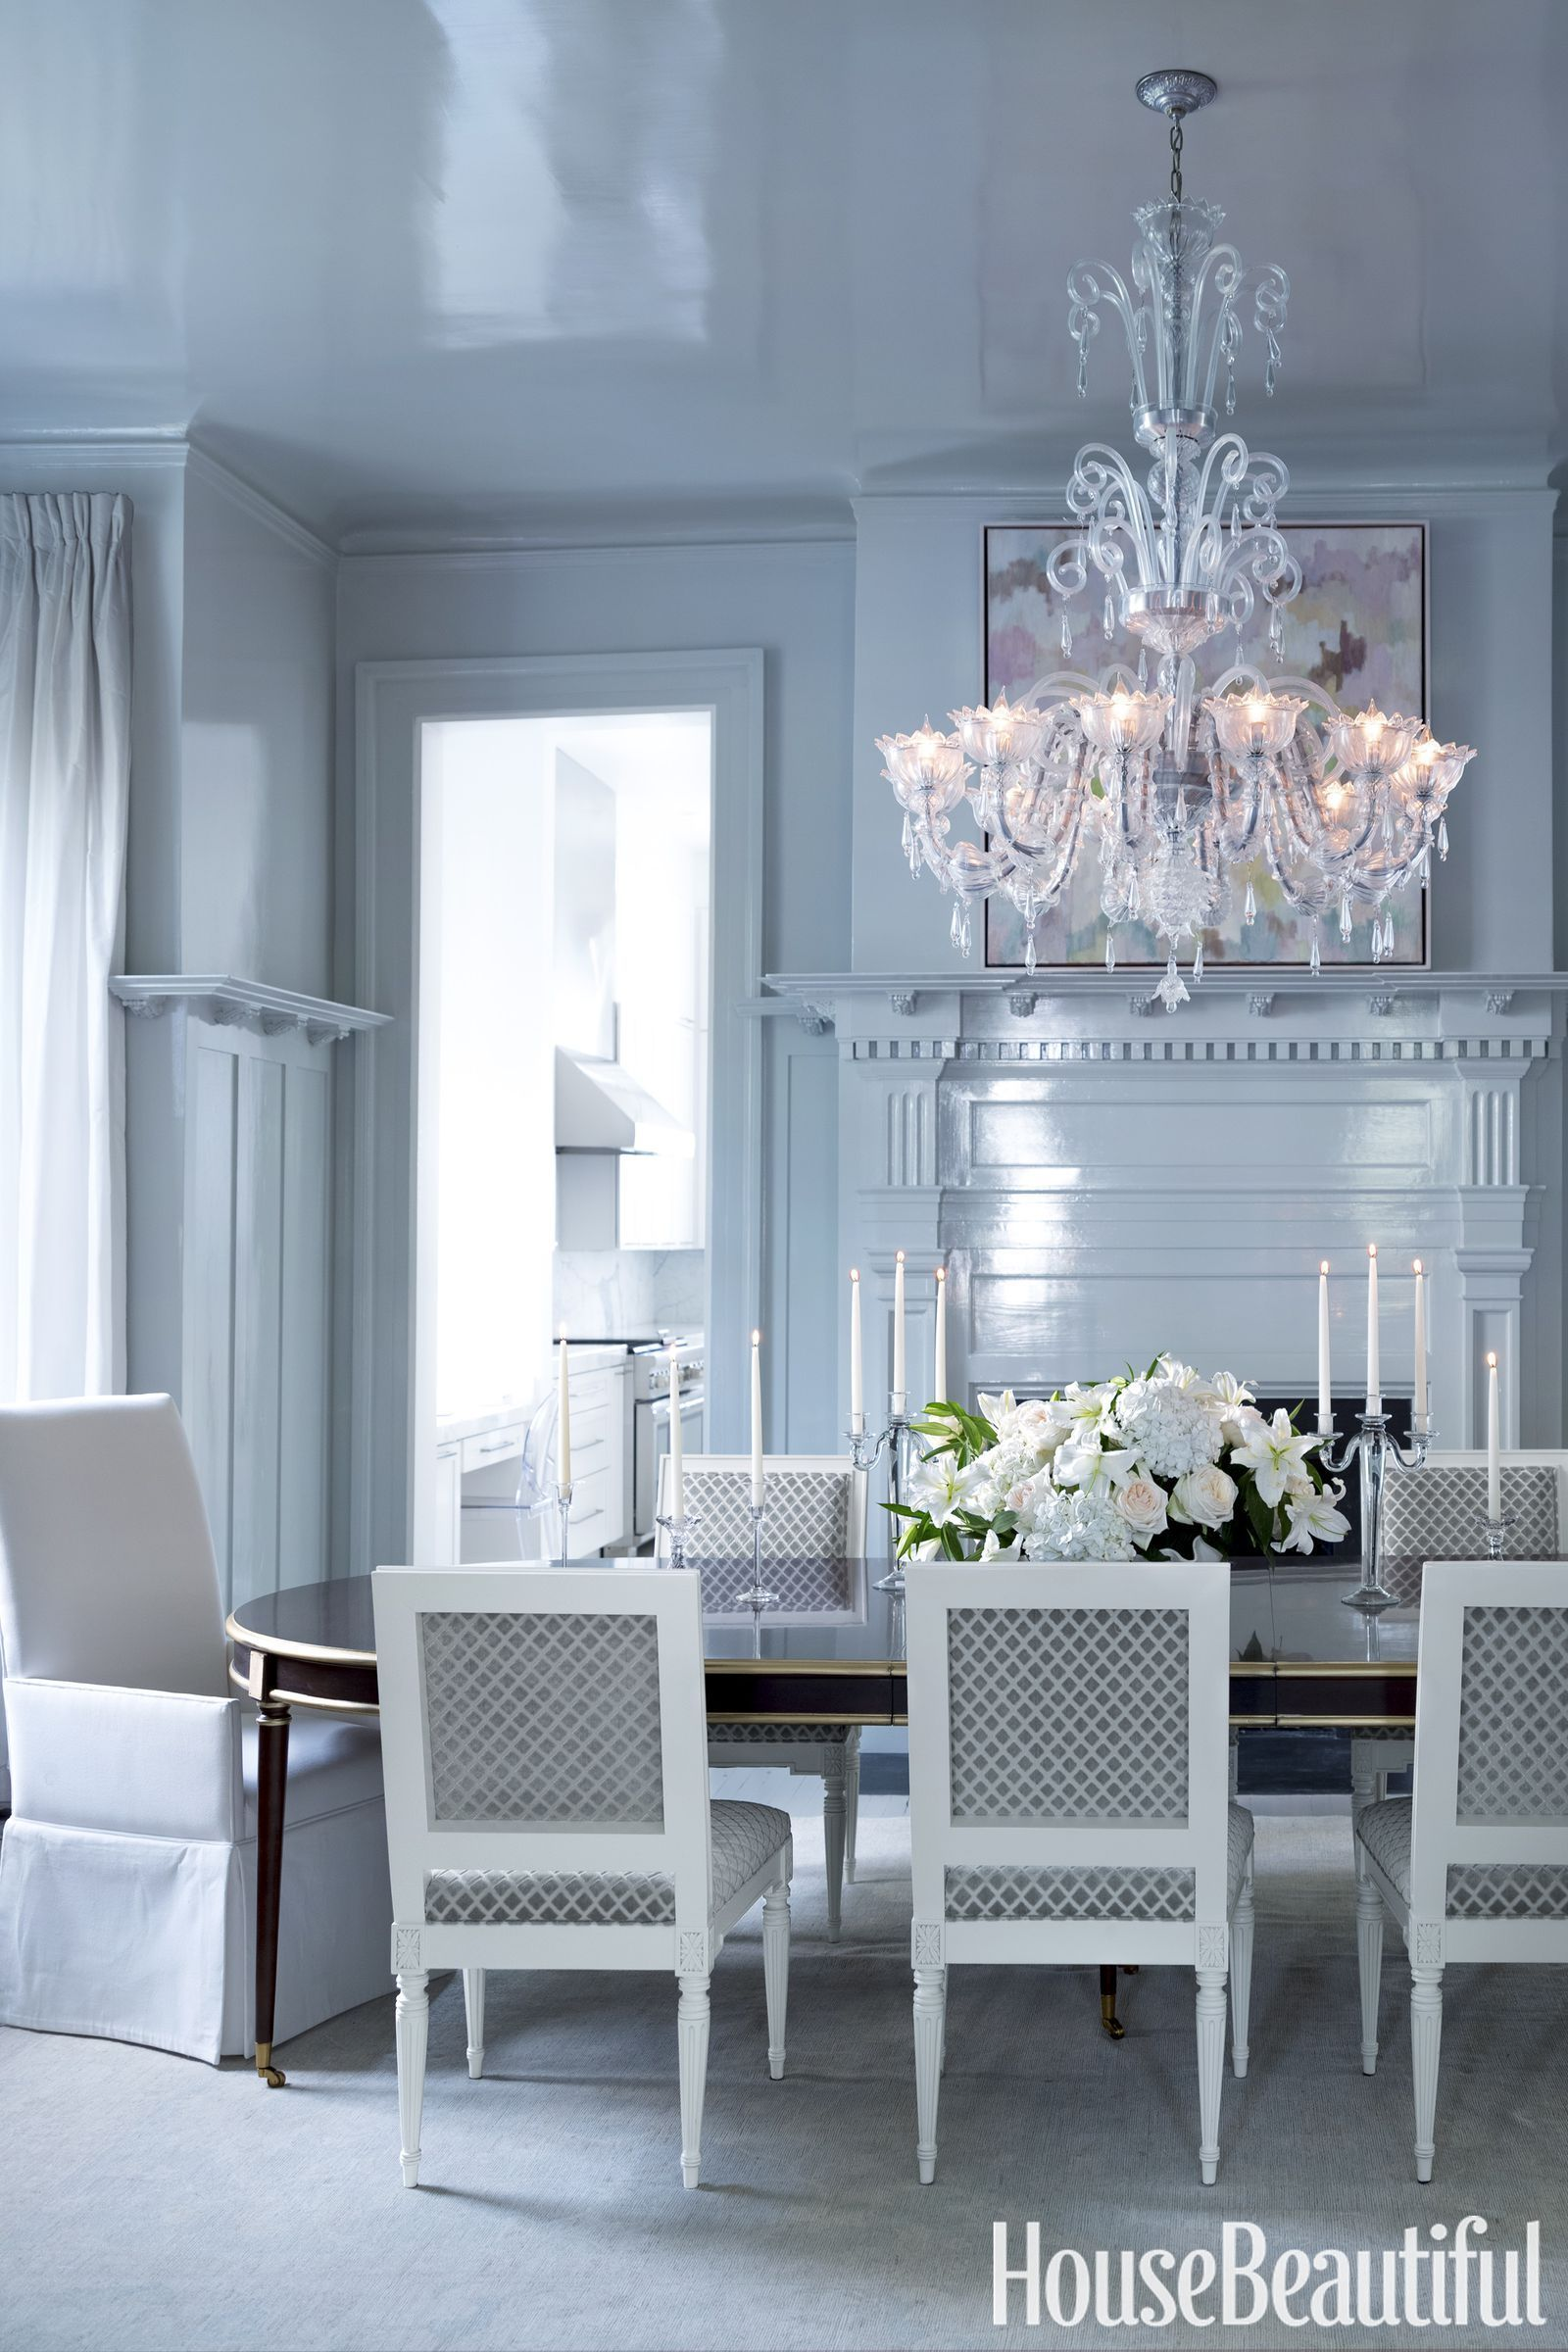 An Elegant And Airy Dining Room Aesthetic With Both European